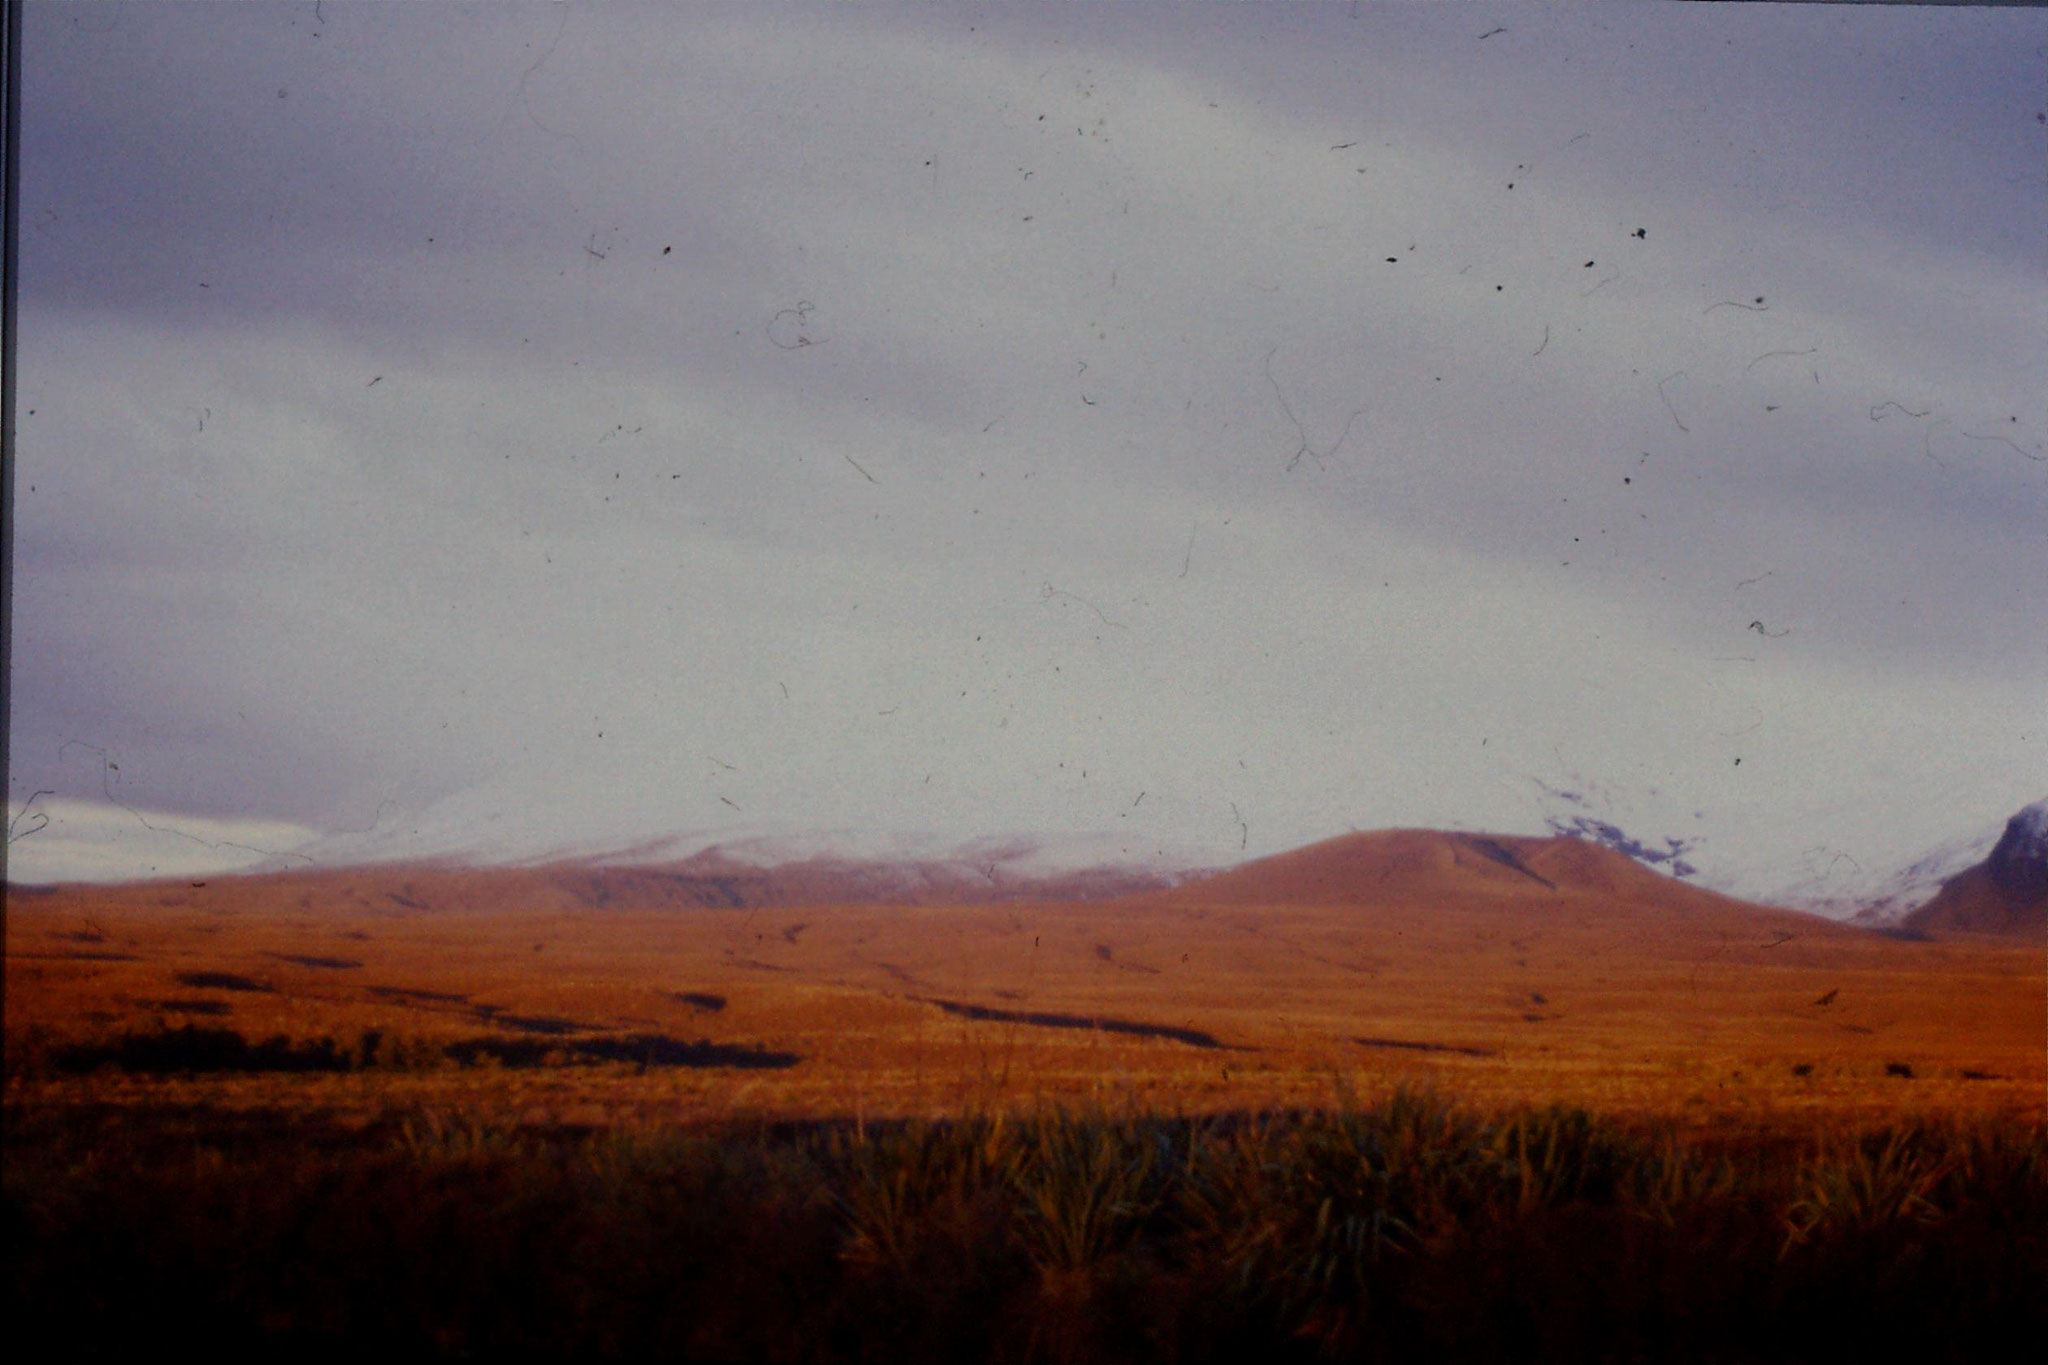 29/8/1990: 4: sunset on Mt Ngauruhoe